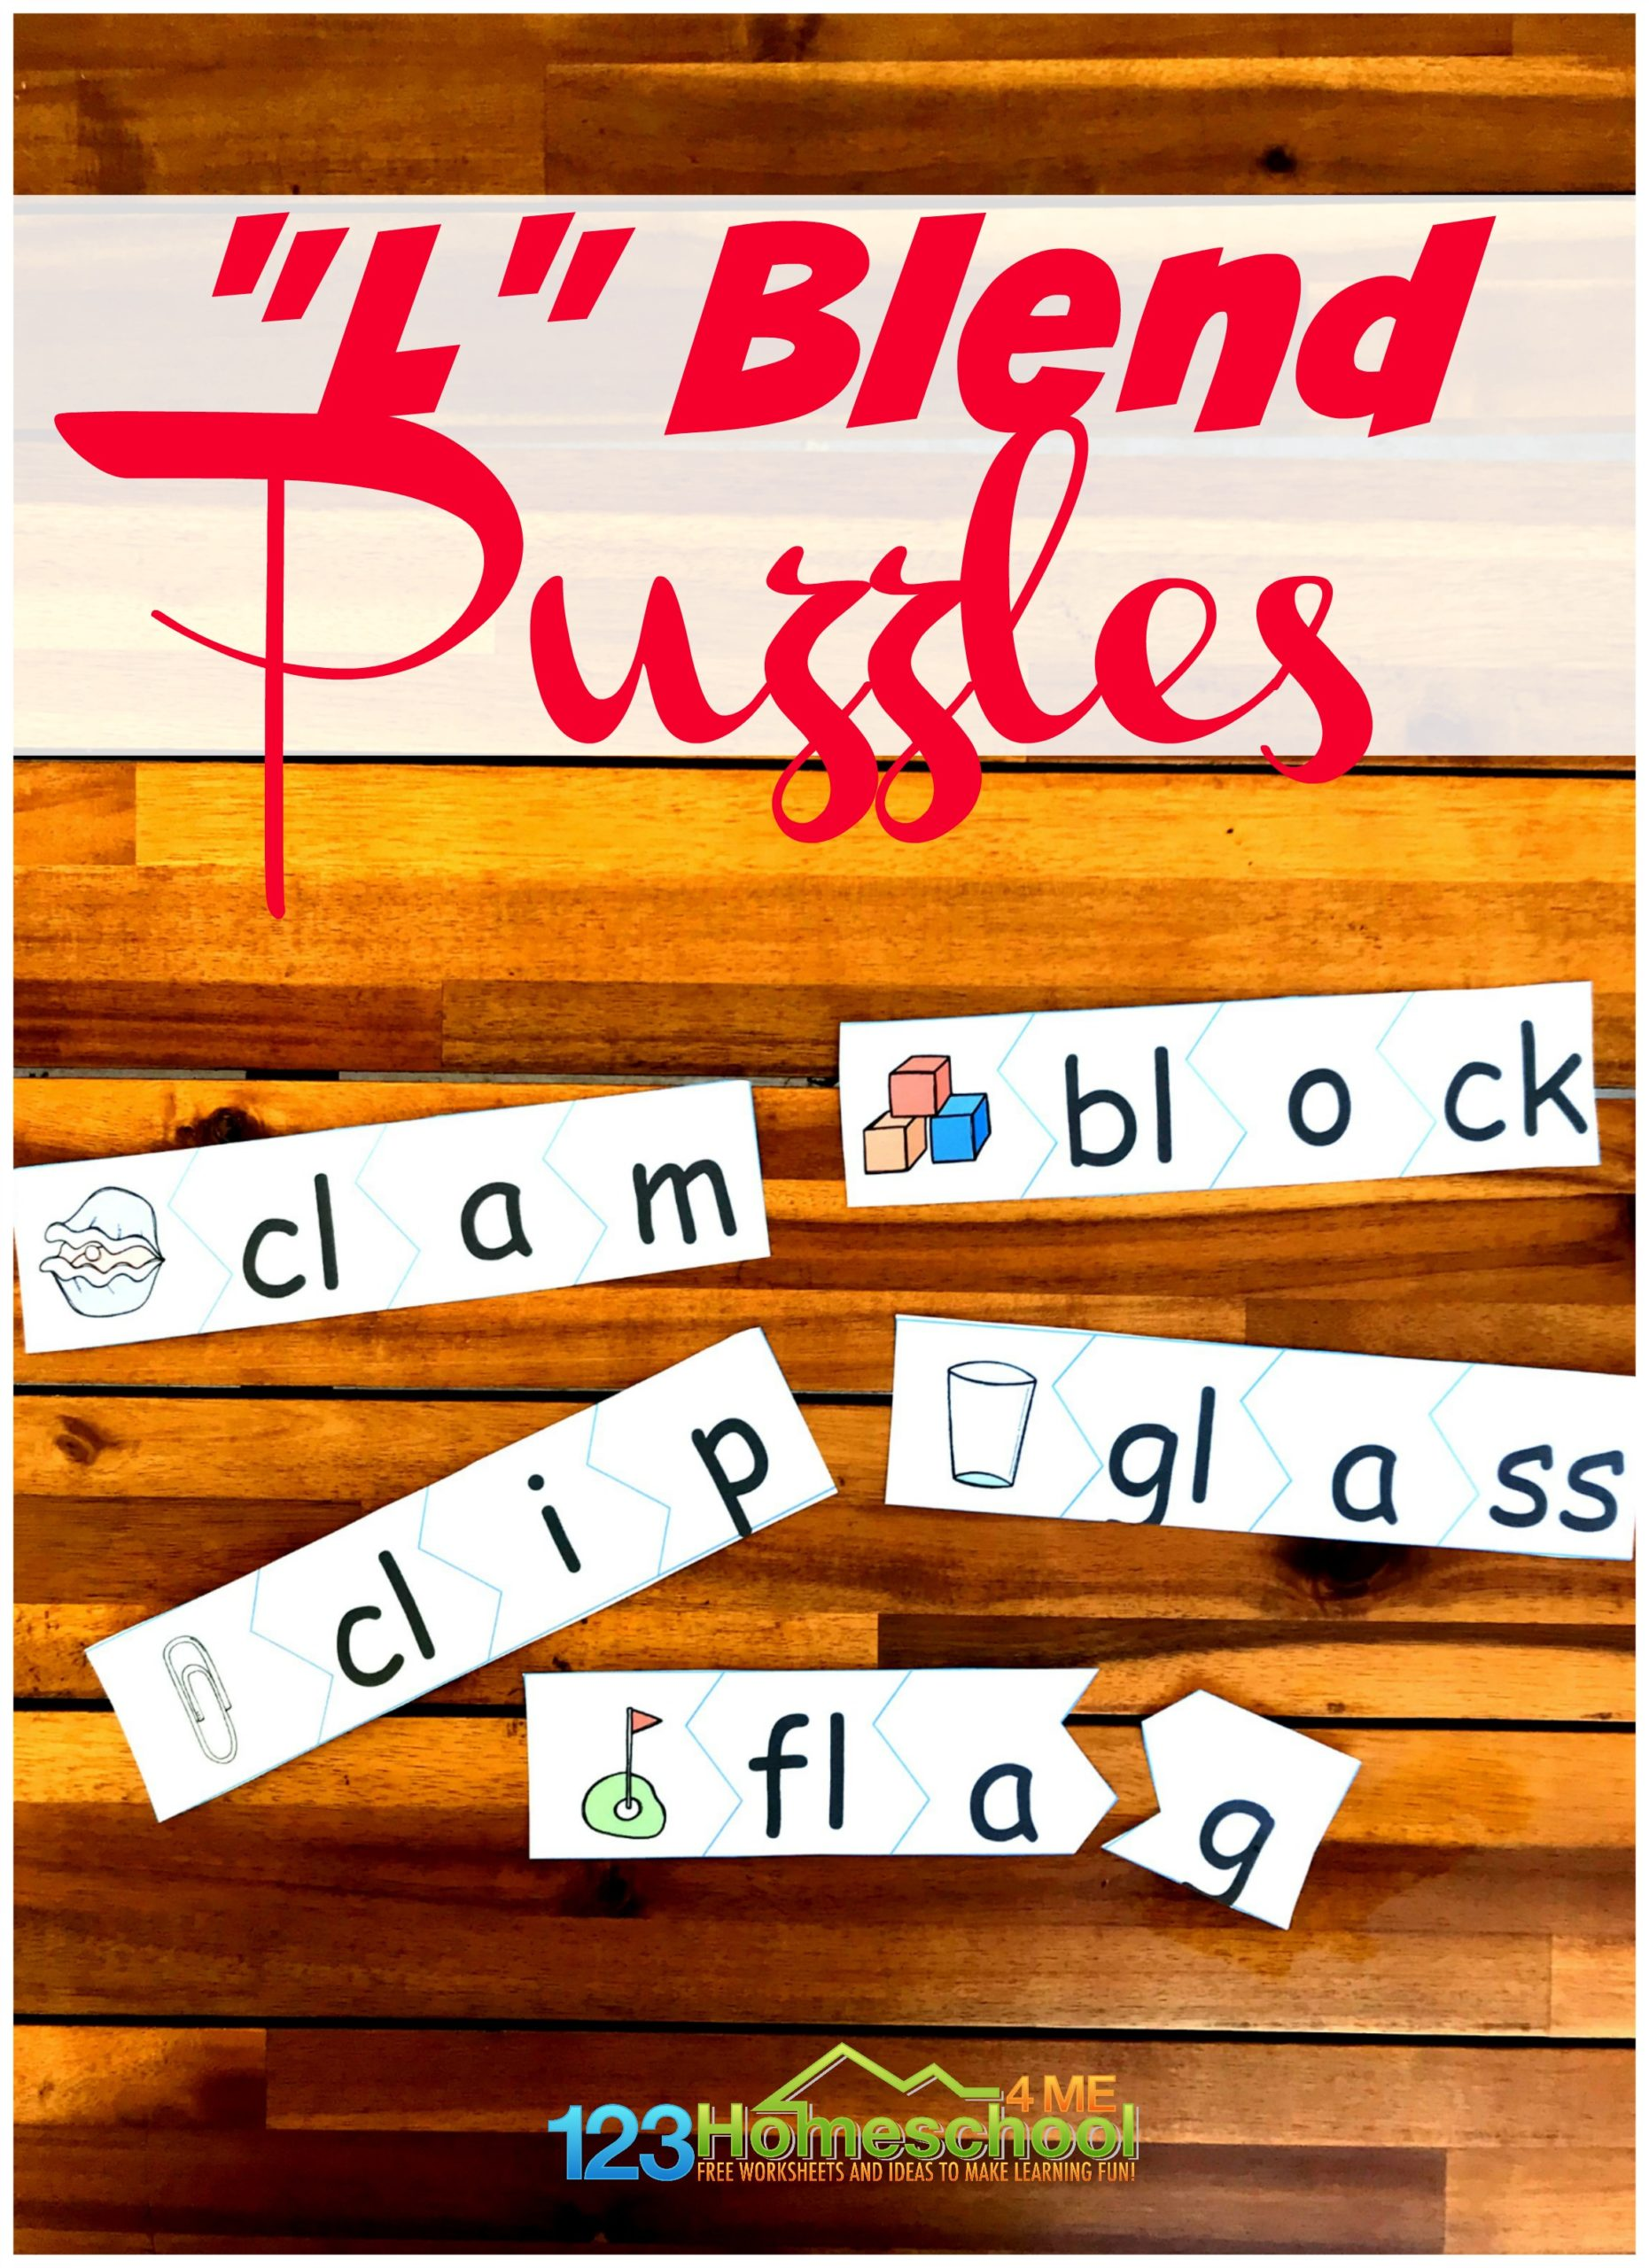 FREE L Blends Puzzles - Help children learn to sound out L blends with these free printable puzzles. This consonant blends activity is great for kindergarten, first grade, and 2nd grade students.